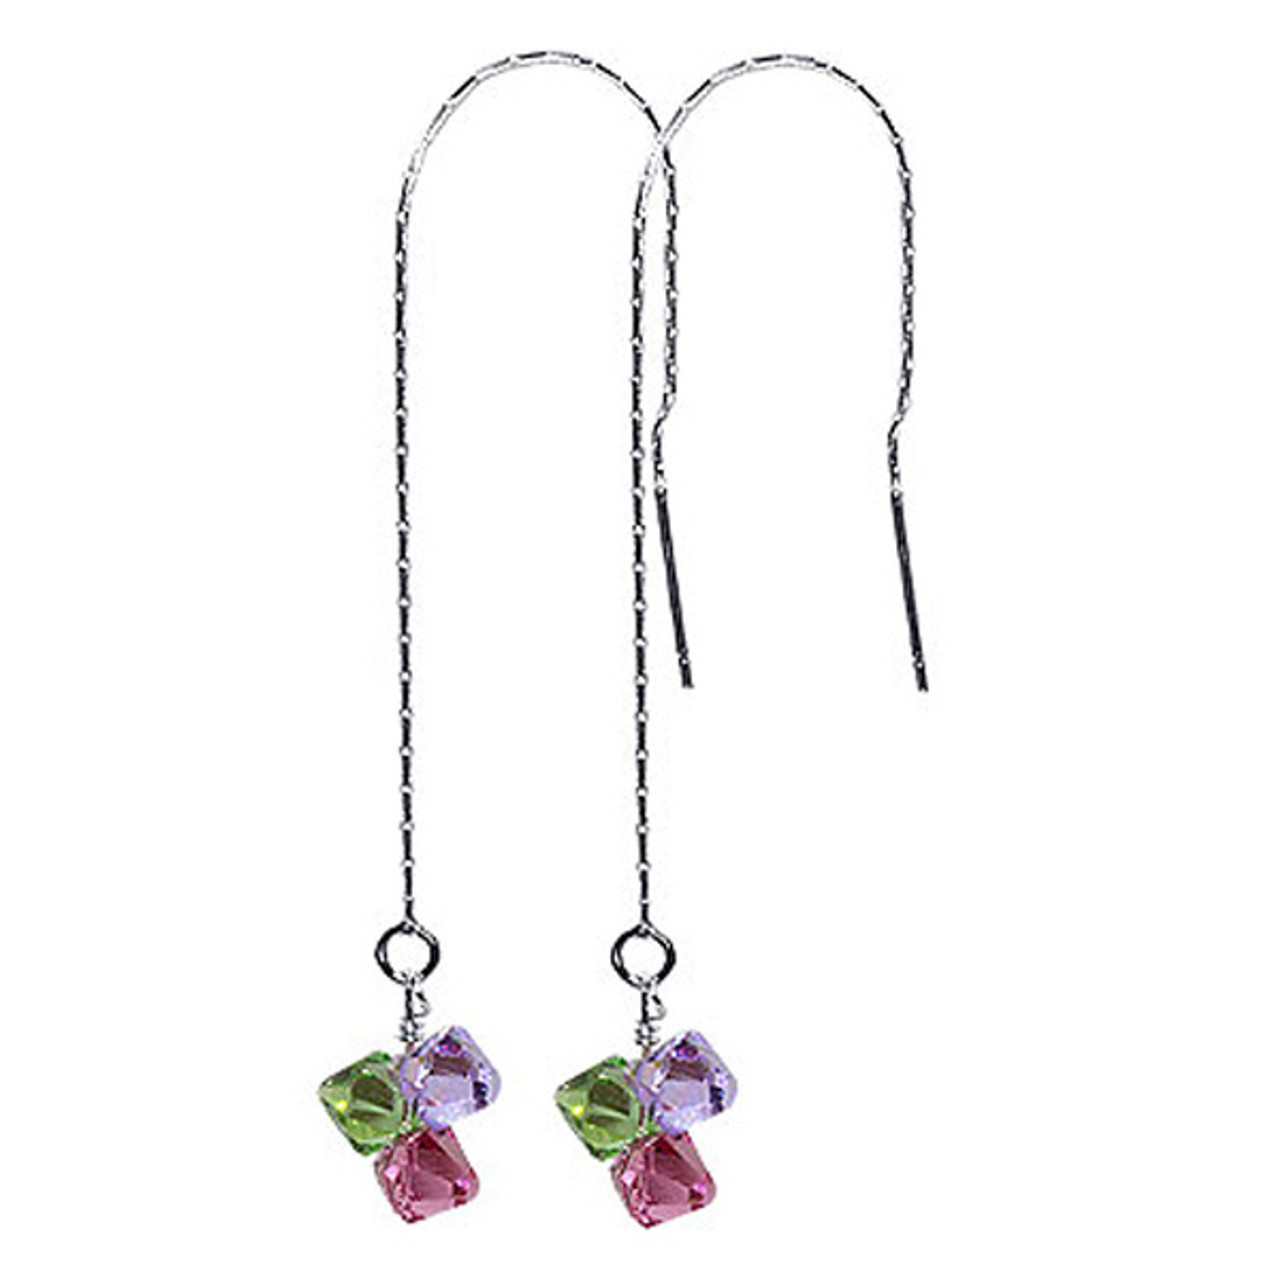 7837c1a44 925 Sterling Silver Made with Swarovski Elements Green Pink and Lavender  Color Crystal Threader String Handmade ...